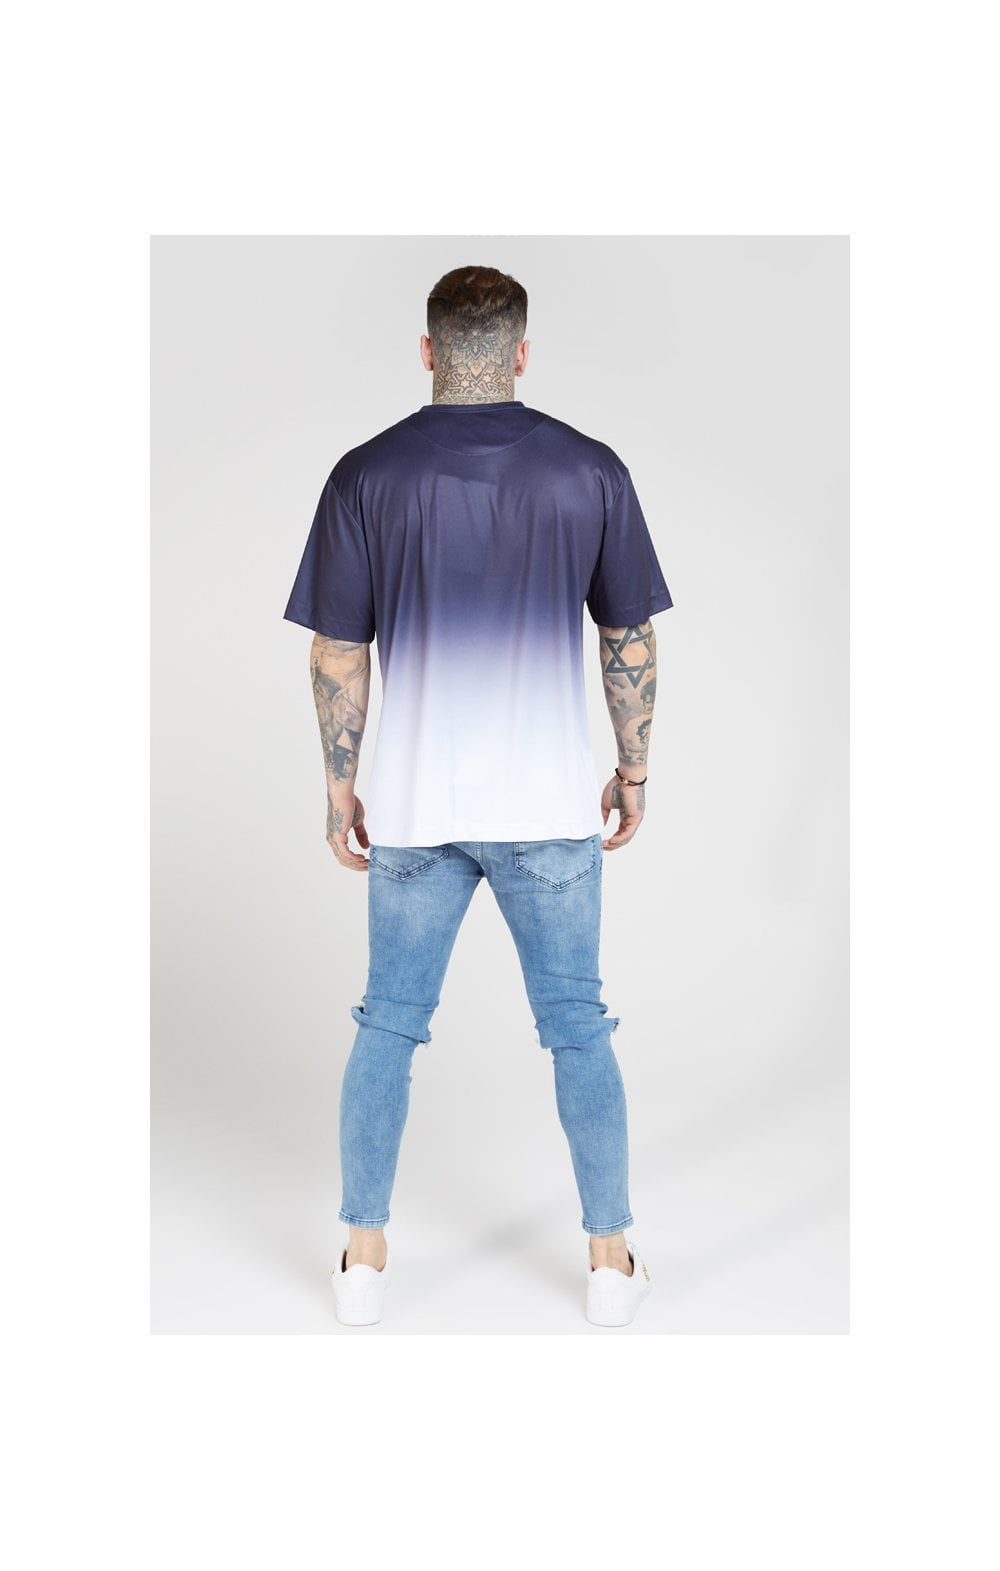 Load image into Gallery viewer, SikSilk S/S Essential Tee - Navy & White (4)